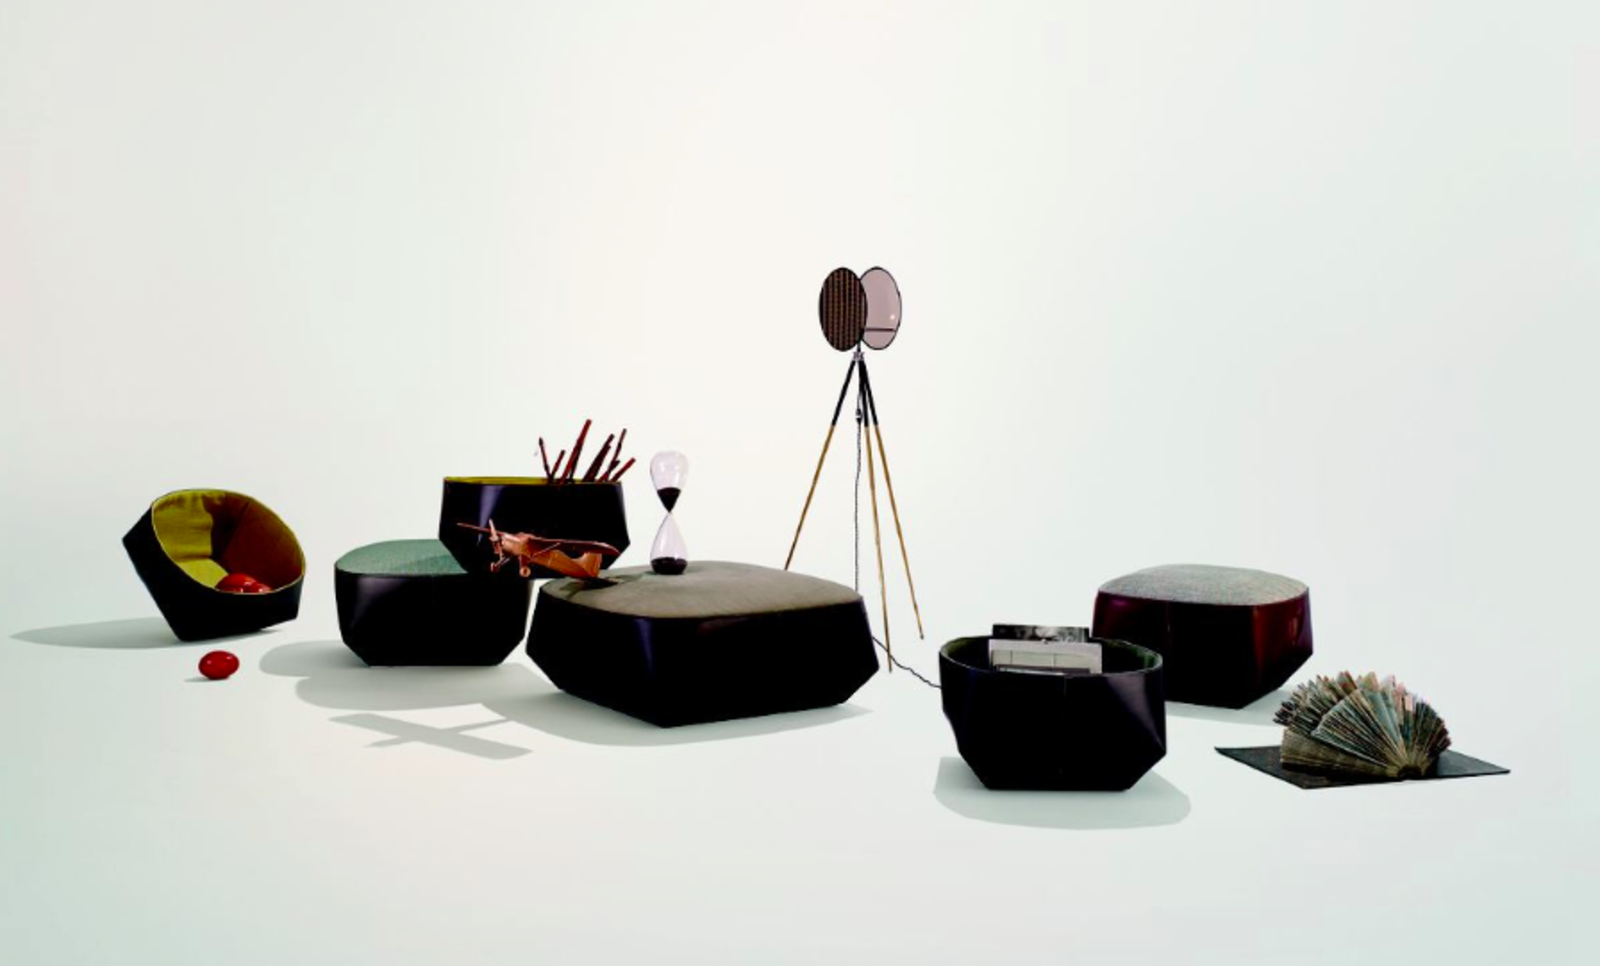 Isanka occasional pieces by EOOS for Walter Knoll.  Austrian design trio EOOS debuted this collection in 2014, and while the objects may seem run-of-the-mill (an upholstered ottoman-meets-table, a basket for periodicals) the materials are the prize. Saddle leather—a supple portion of the cowhide to which we devoted a special portion of our March 2015 issue design issue—joins pure wool, linen, and cotton textiles.  Best of the Best: immcologne 2015 by Amanda Dameron